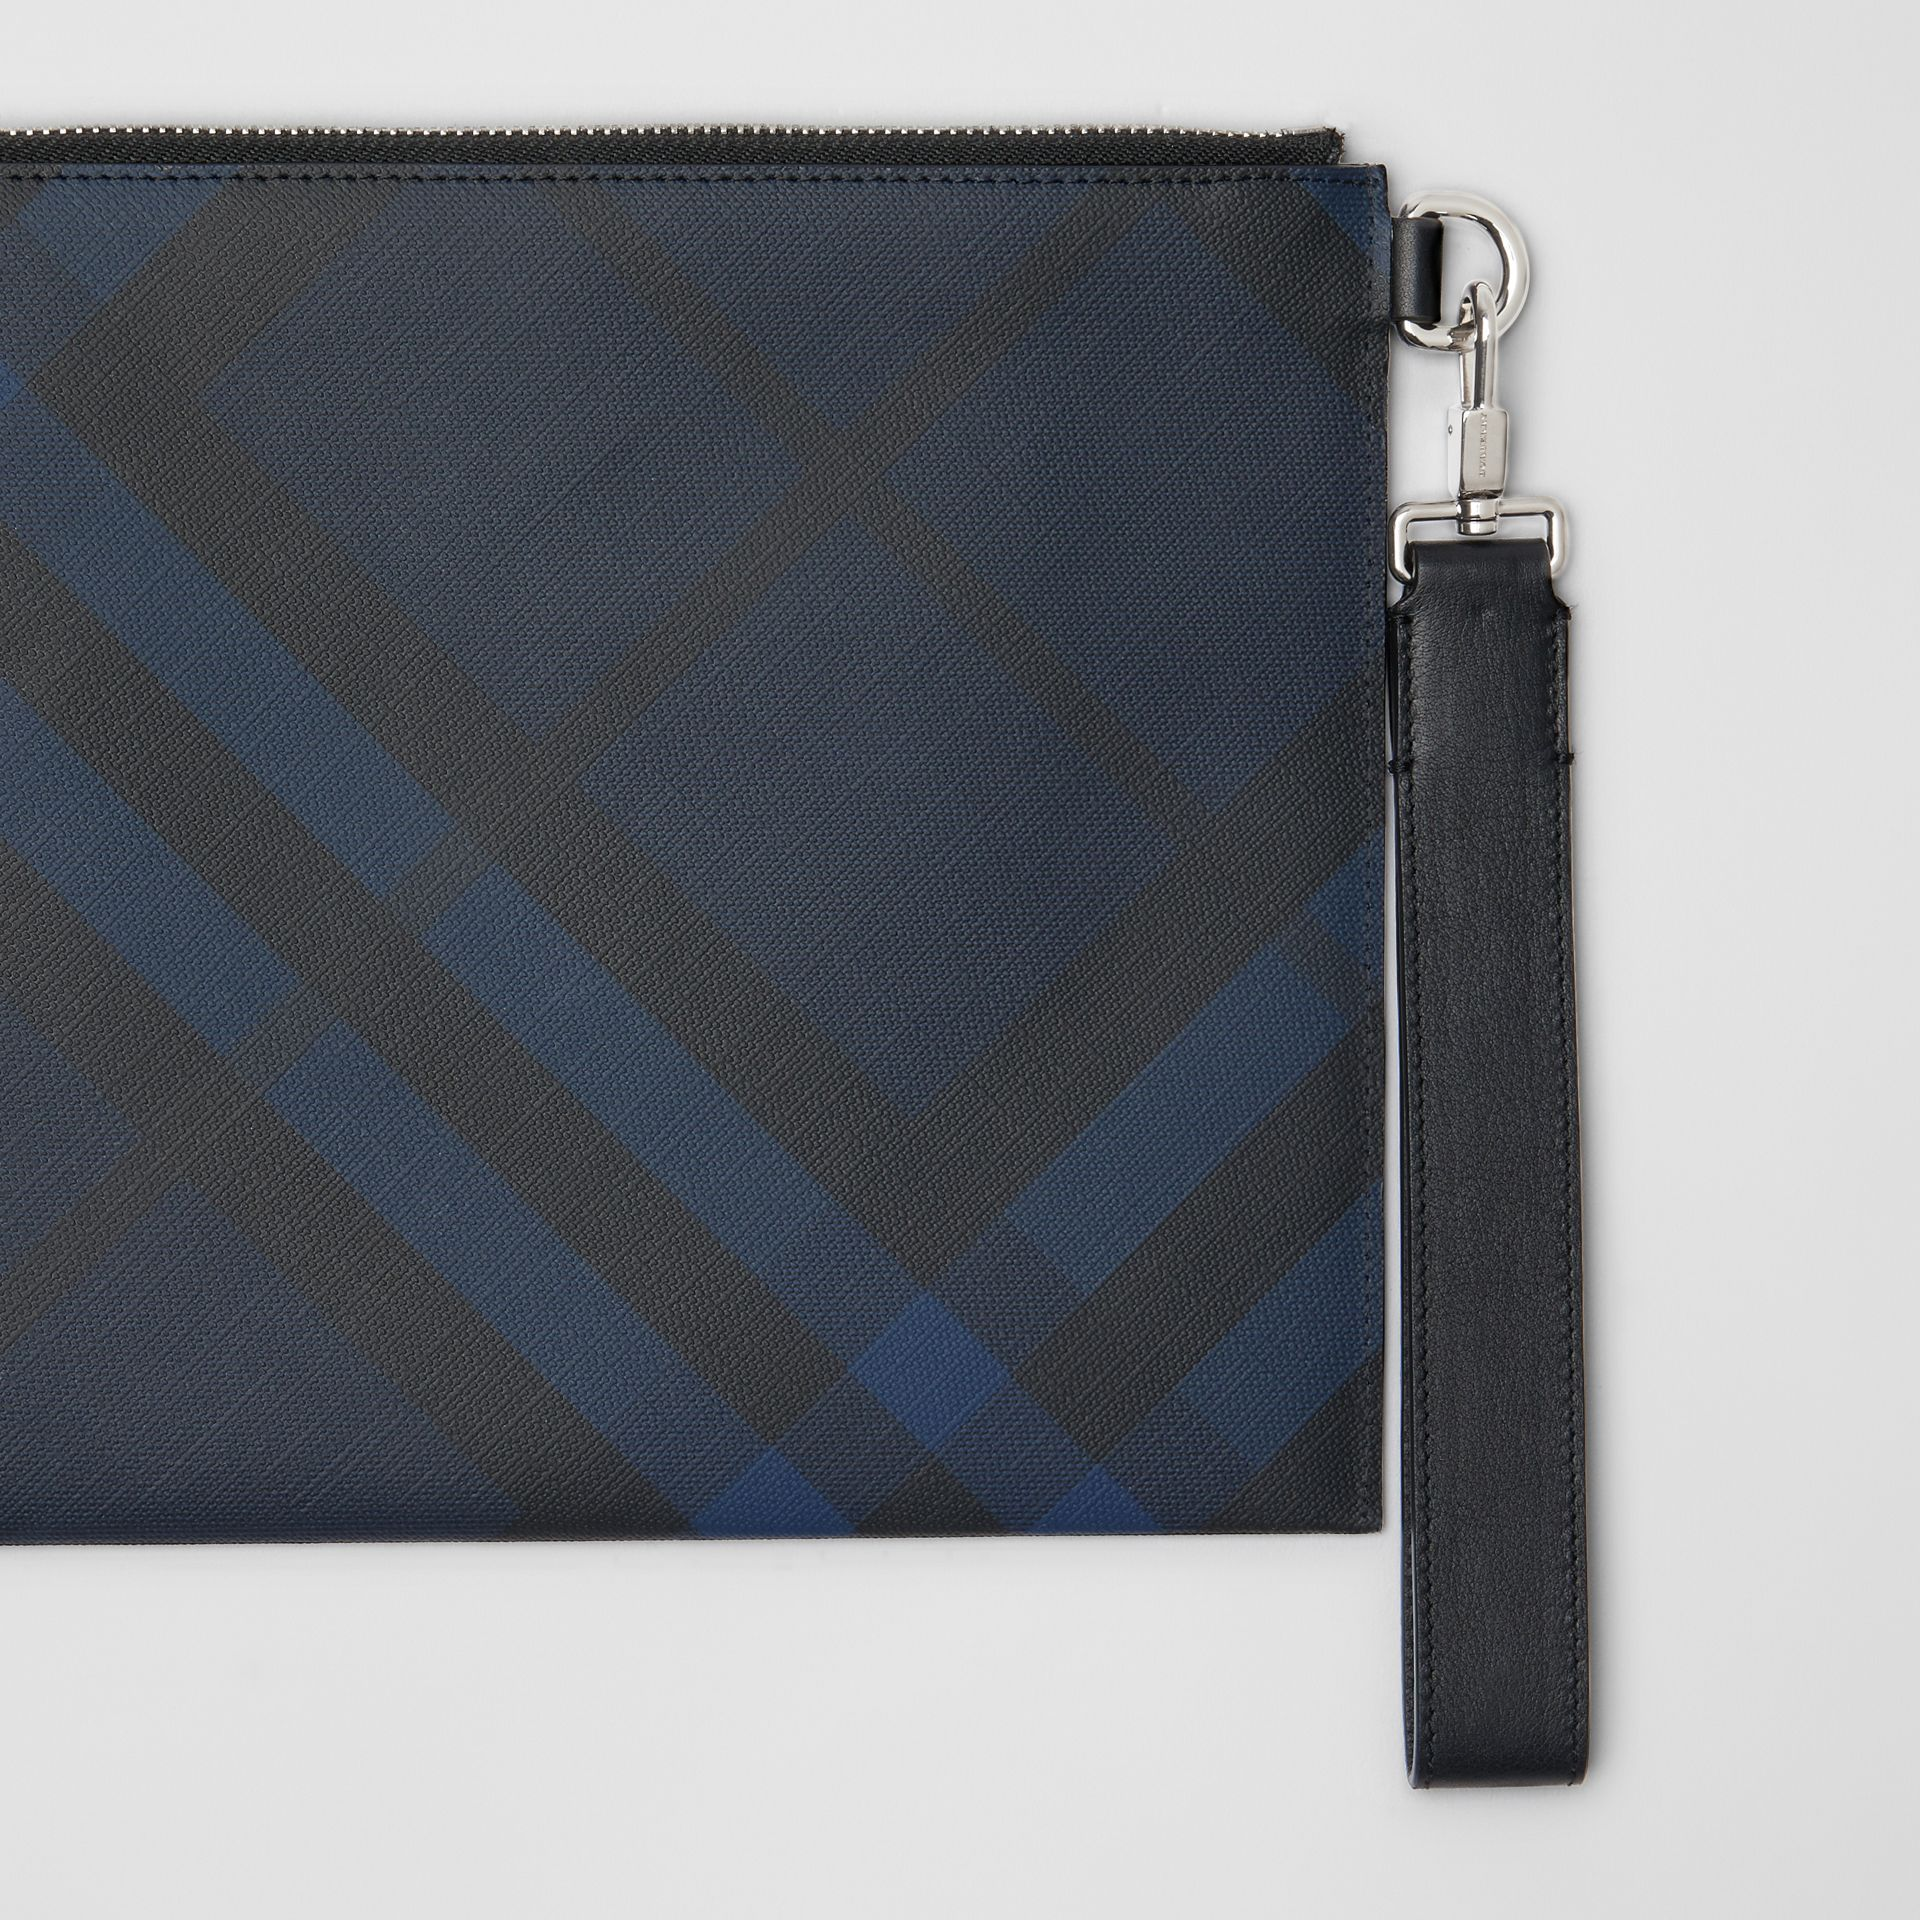 Pochette zippée à motif London check (Marine/noir) - Homme | Burberry - photo de la galerie 1